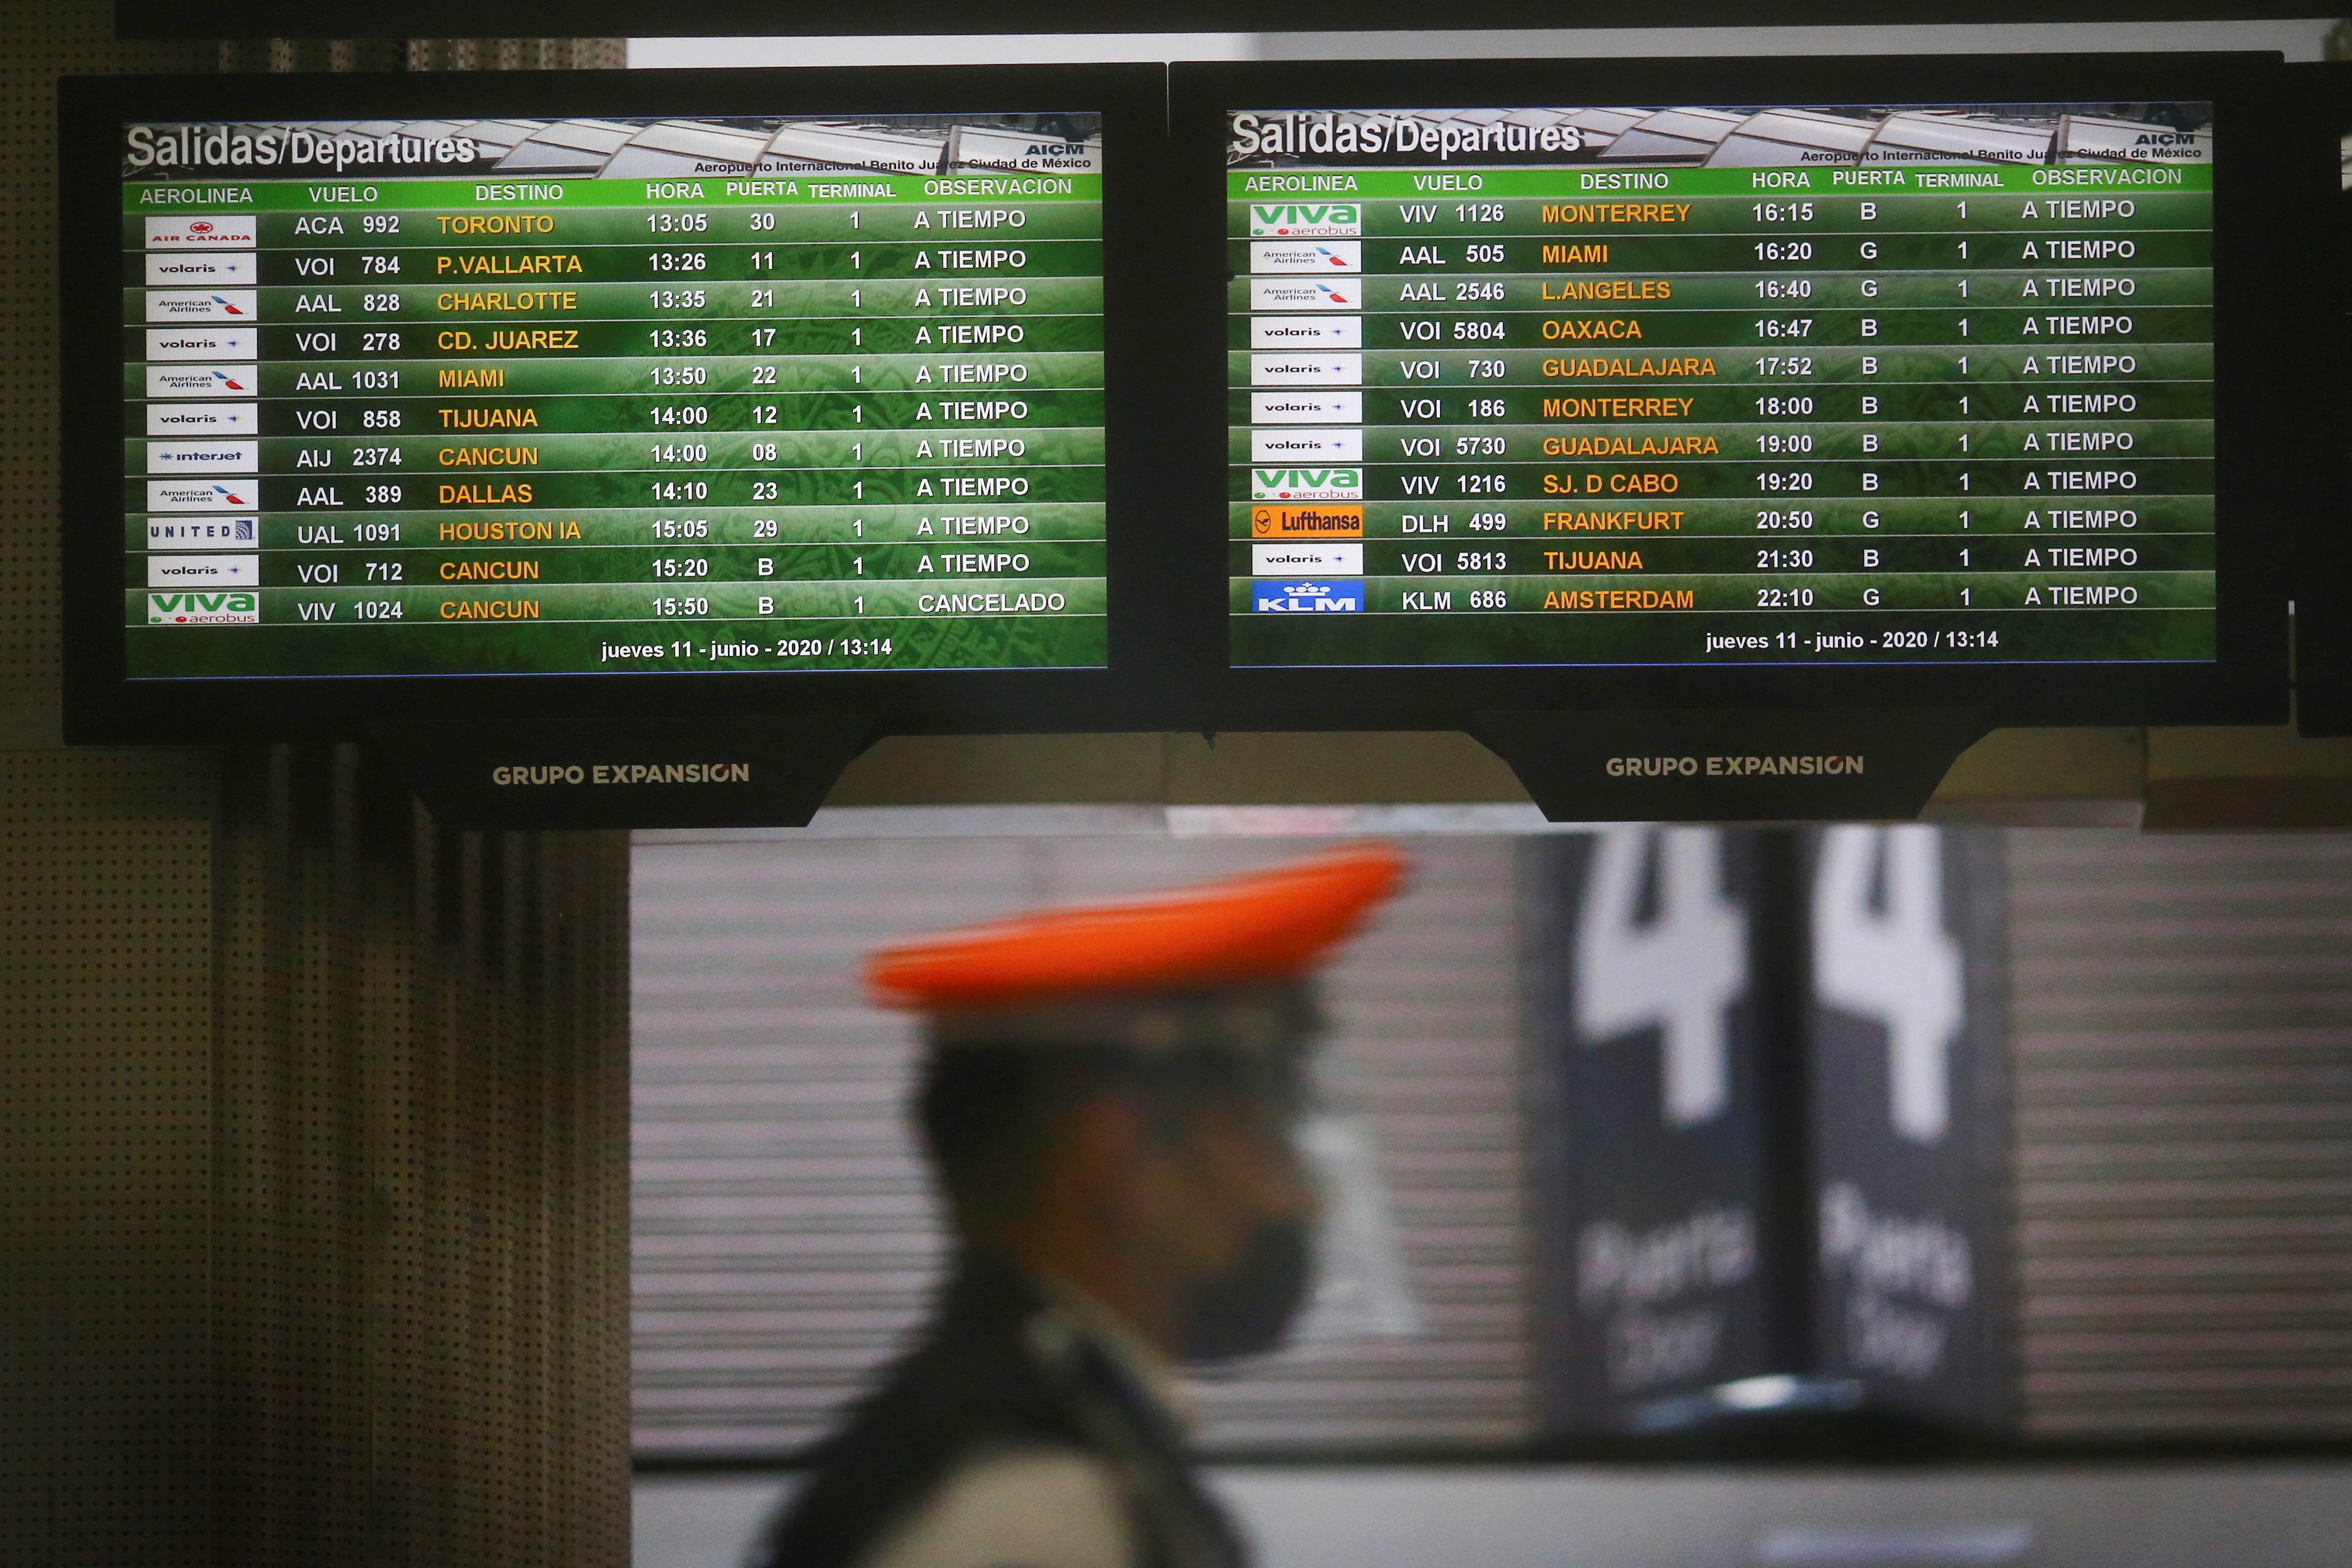 Screens show flight information at the almost empty Benito Juarez international airport, as the spread of the coronavirus disease (COVID-19) continues in Mexico City, Mexico, June 11, 2020. REUTERS/Edgard Garrido